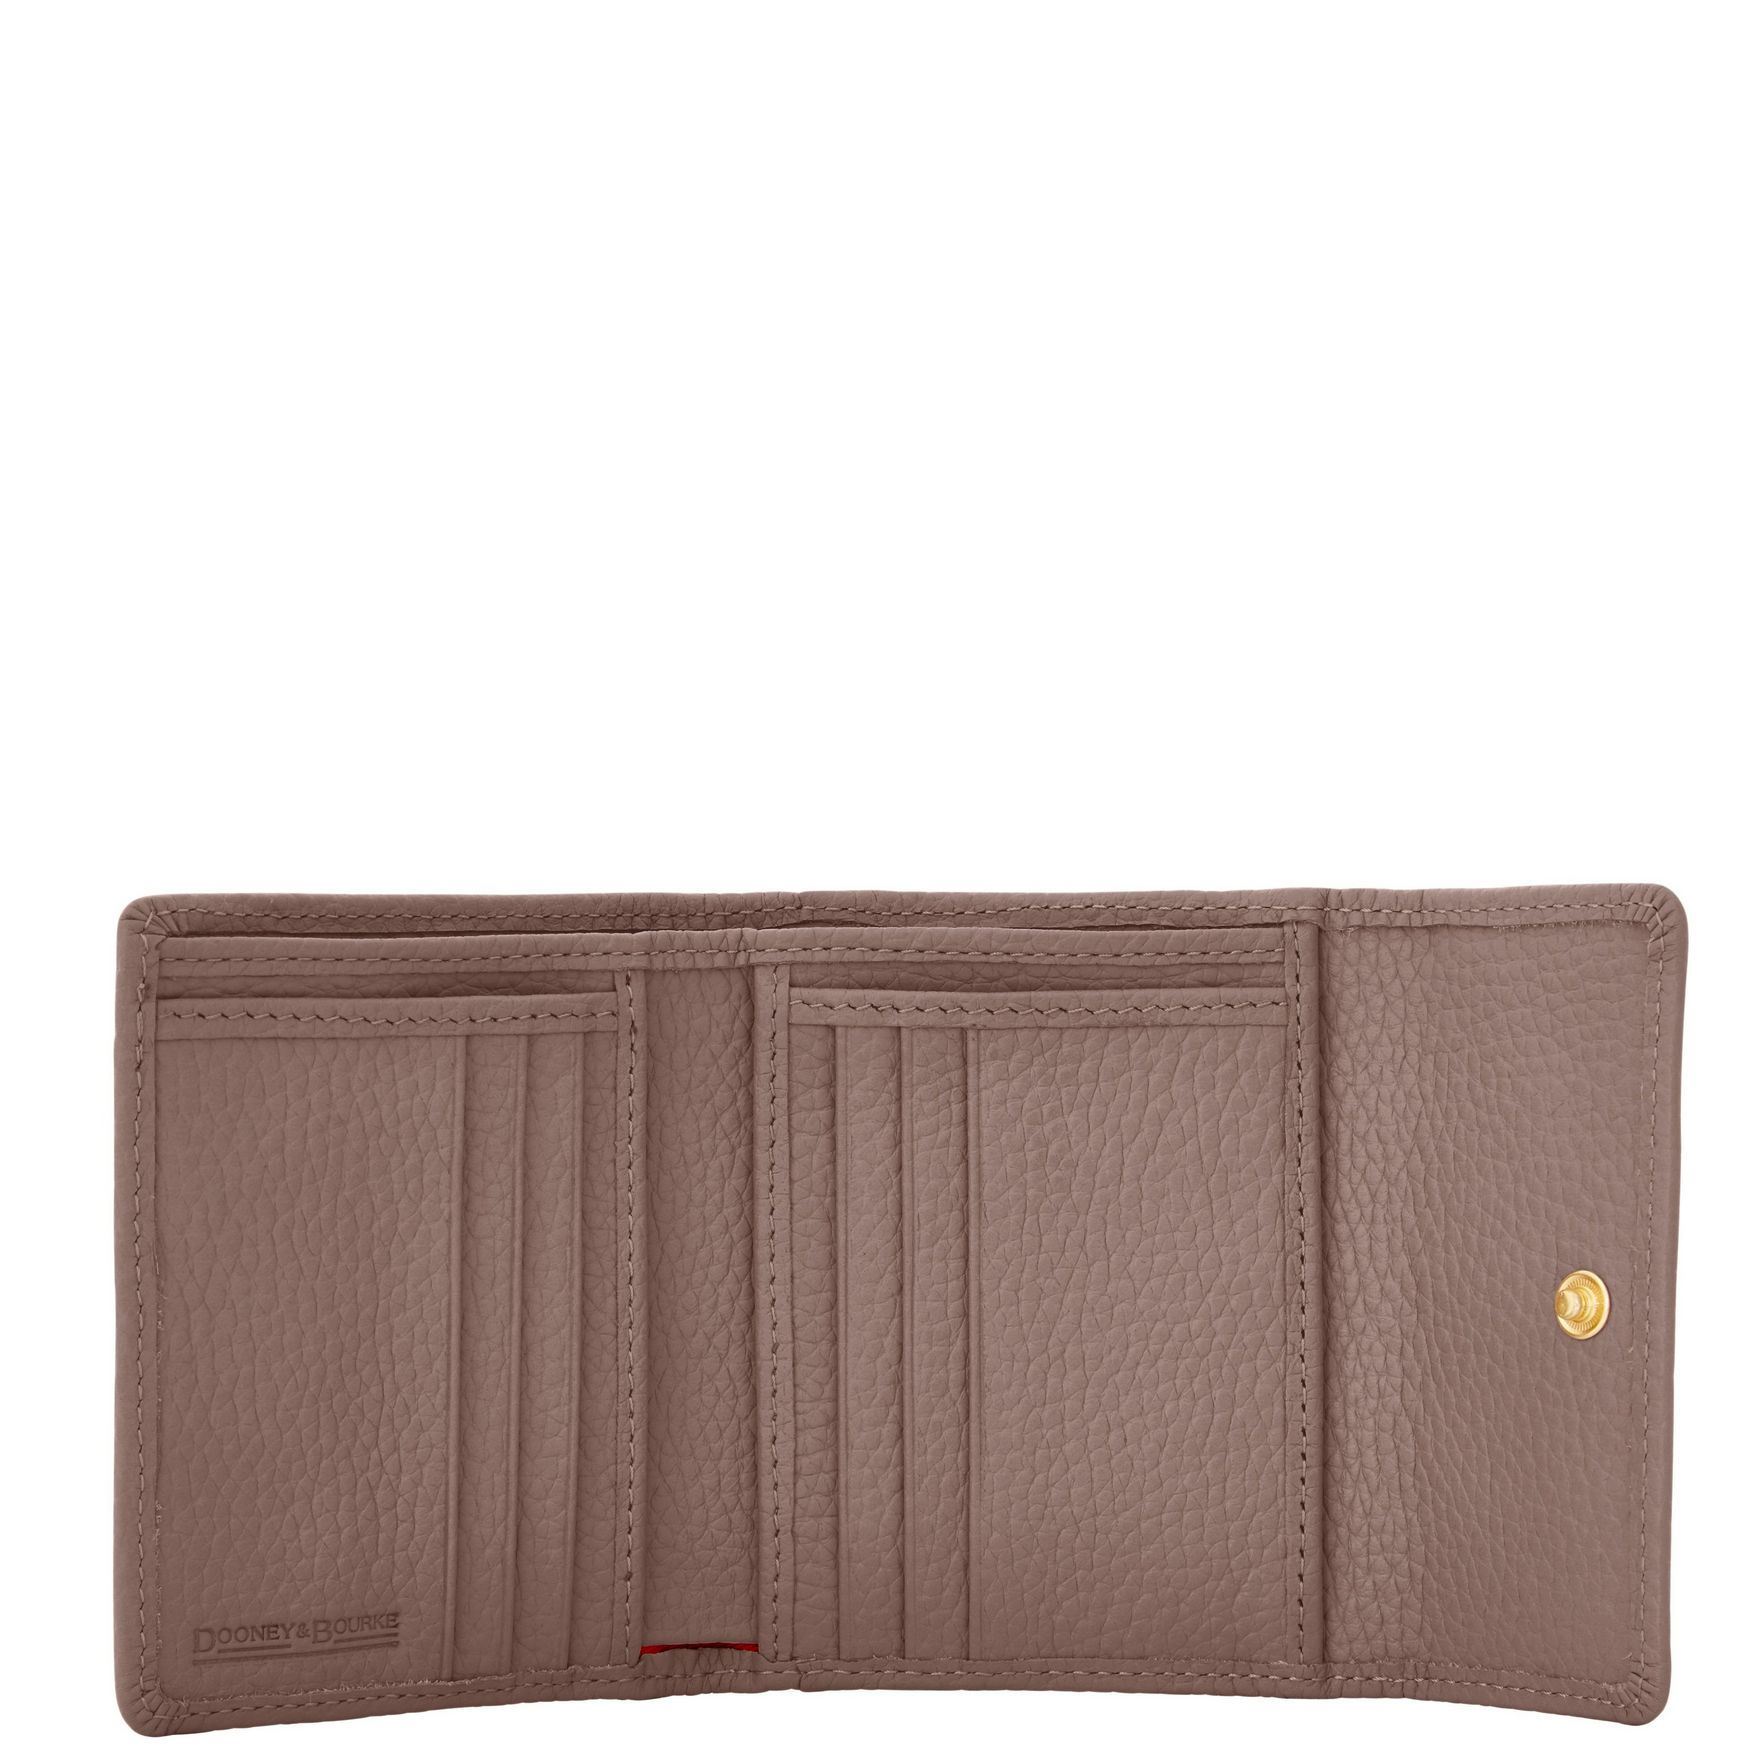 Dooney-amp-Bourke-Pebble-Grain-Small-Flap-Wallet thumbnail 33